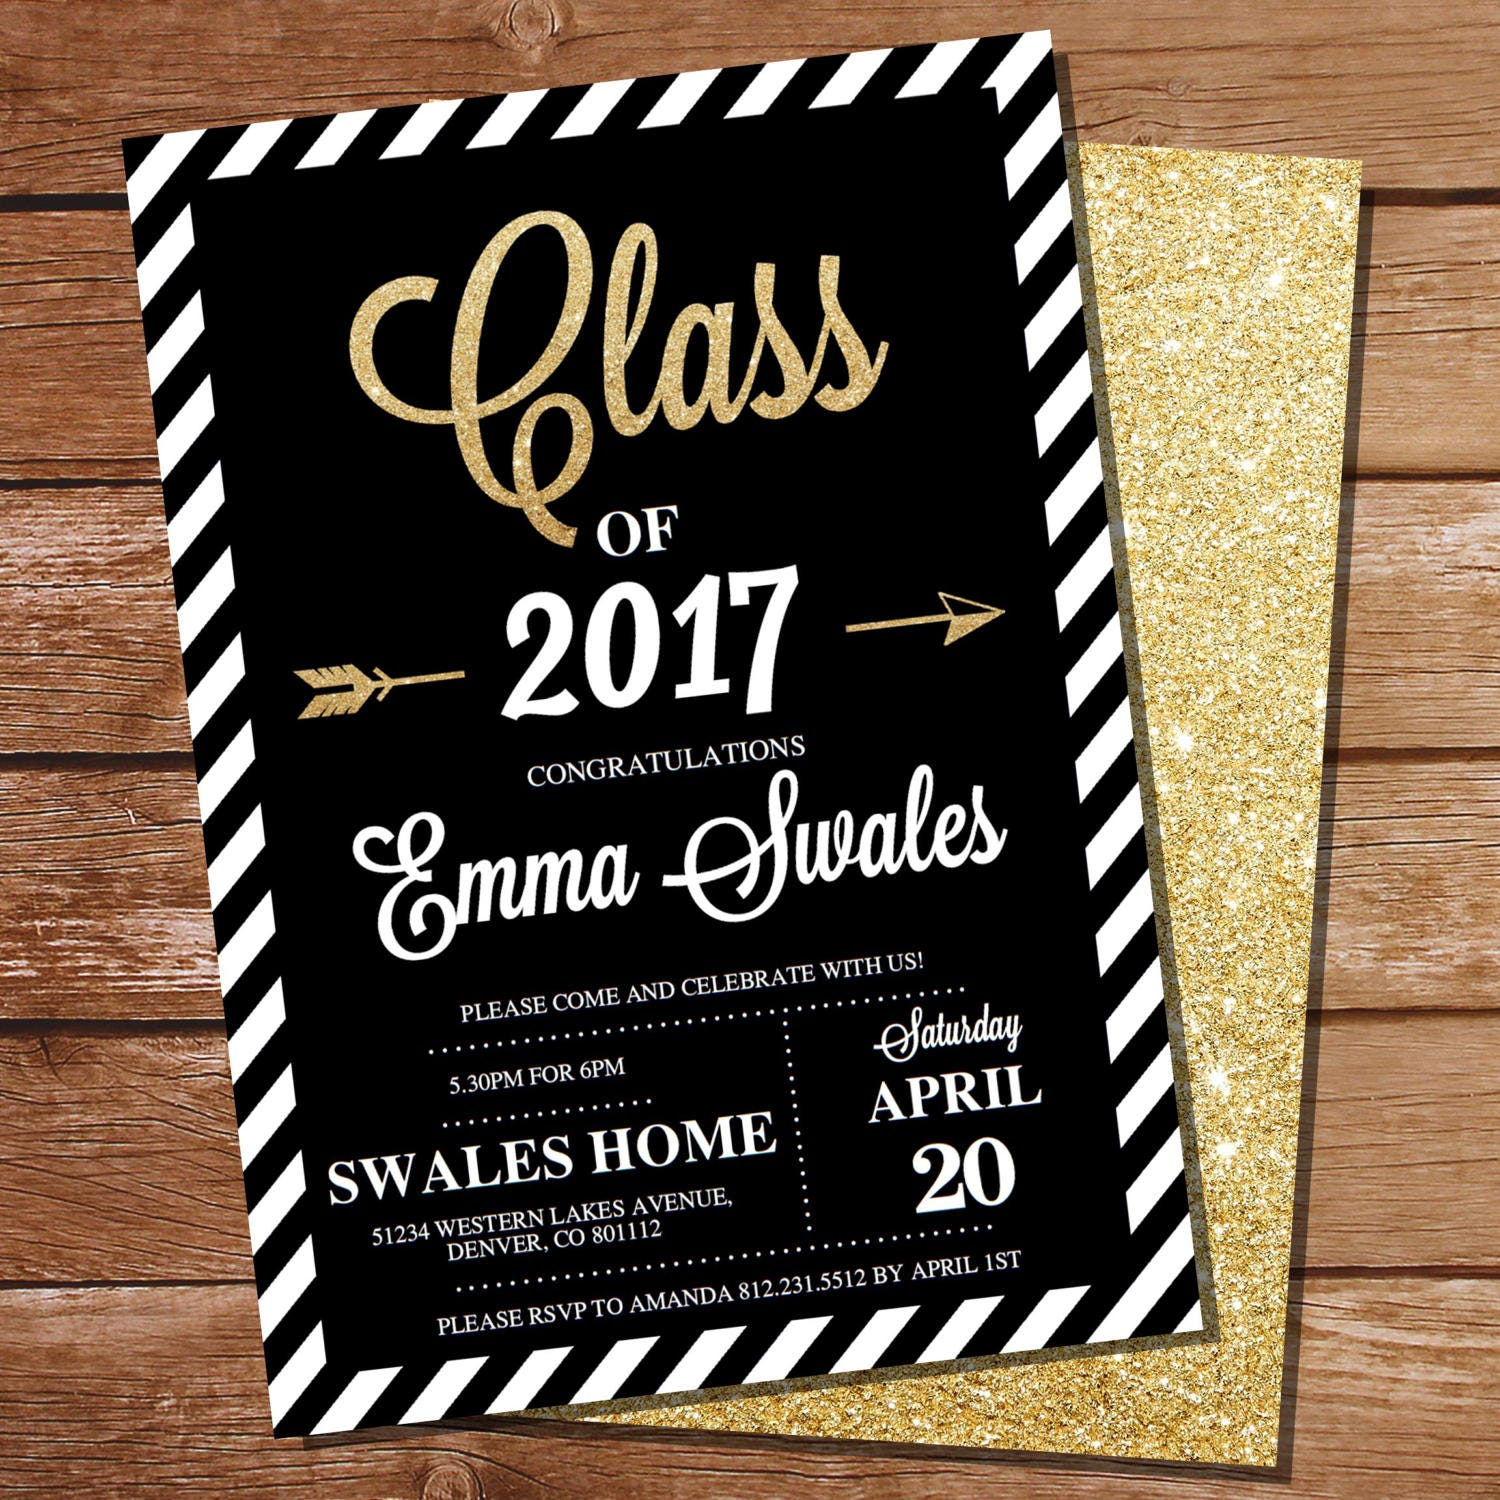 Graduation invitations selol ink graduation invitations filmwisefo